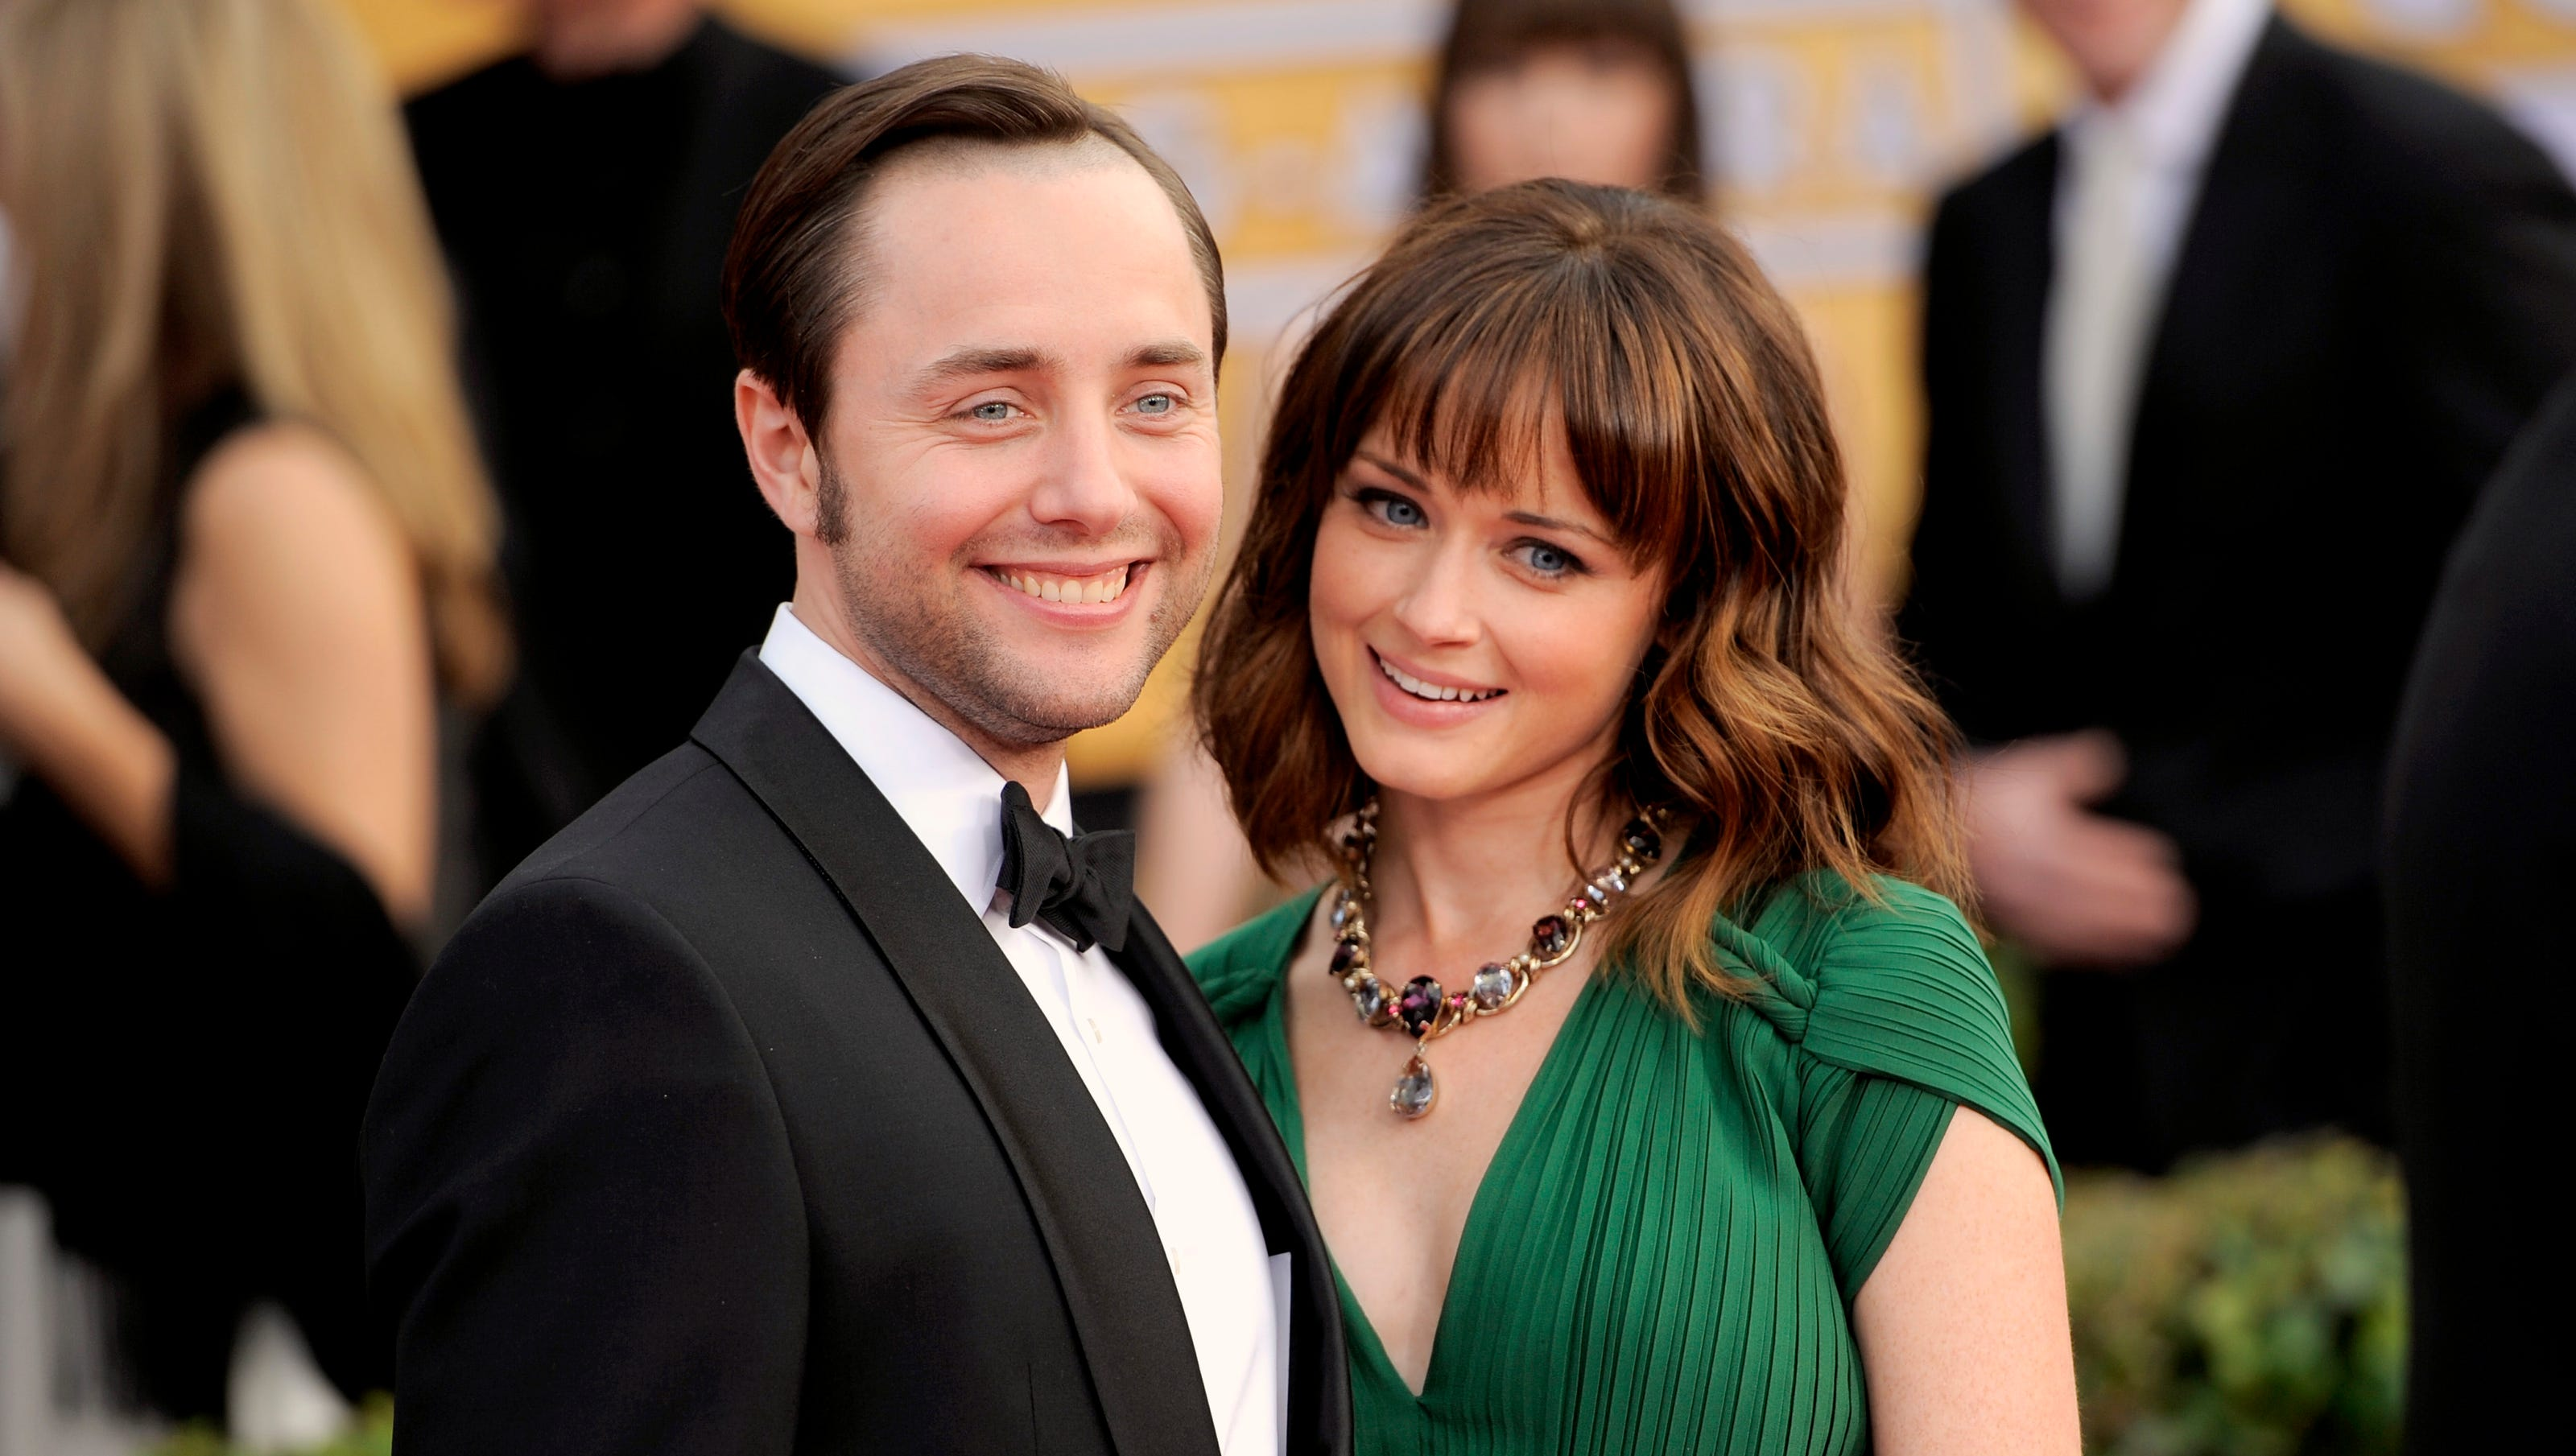 Dated bledel who alexis has The Gilmore